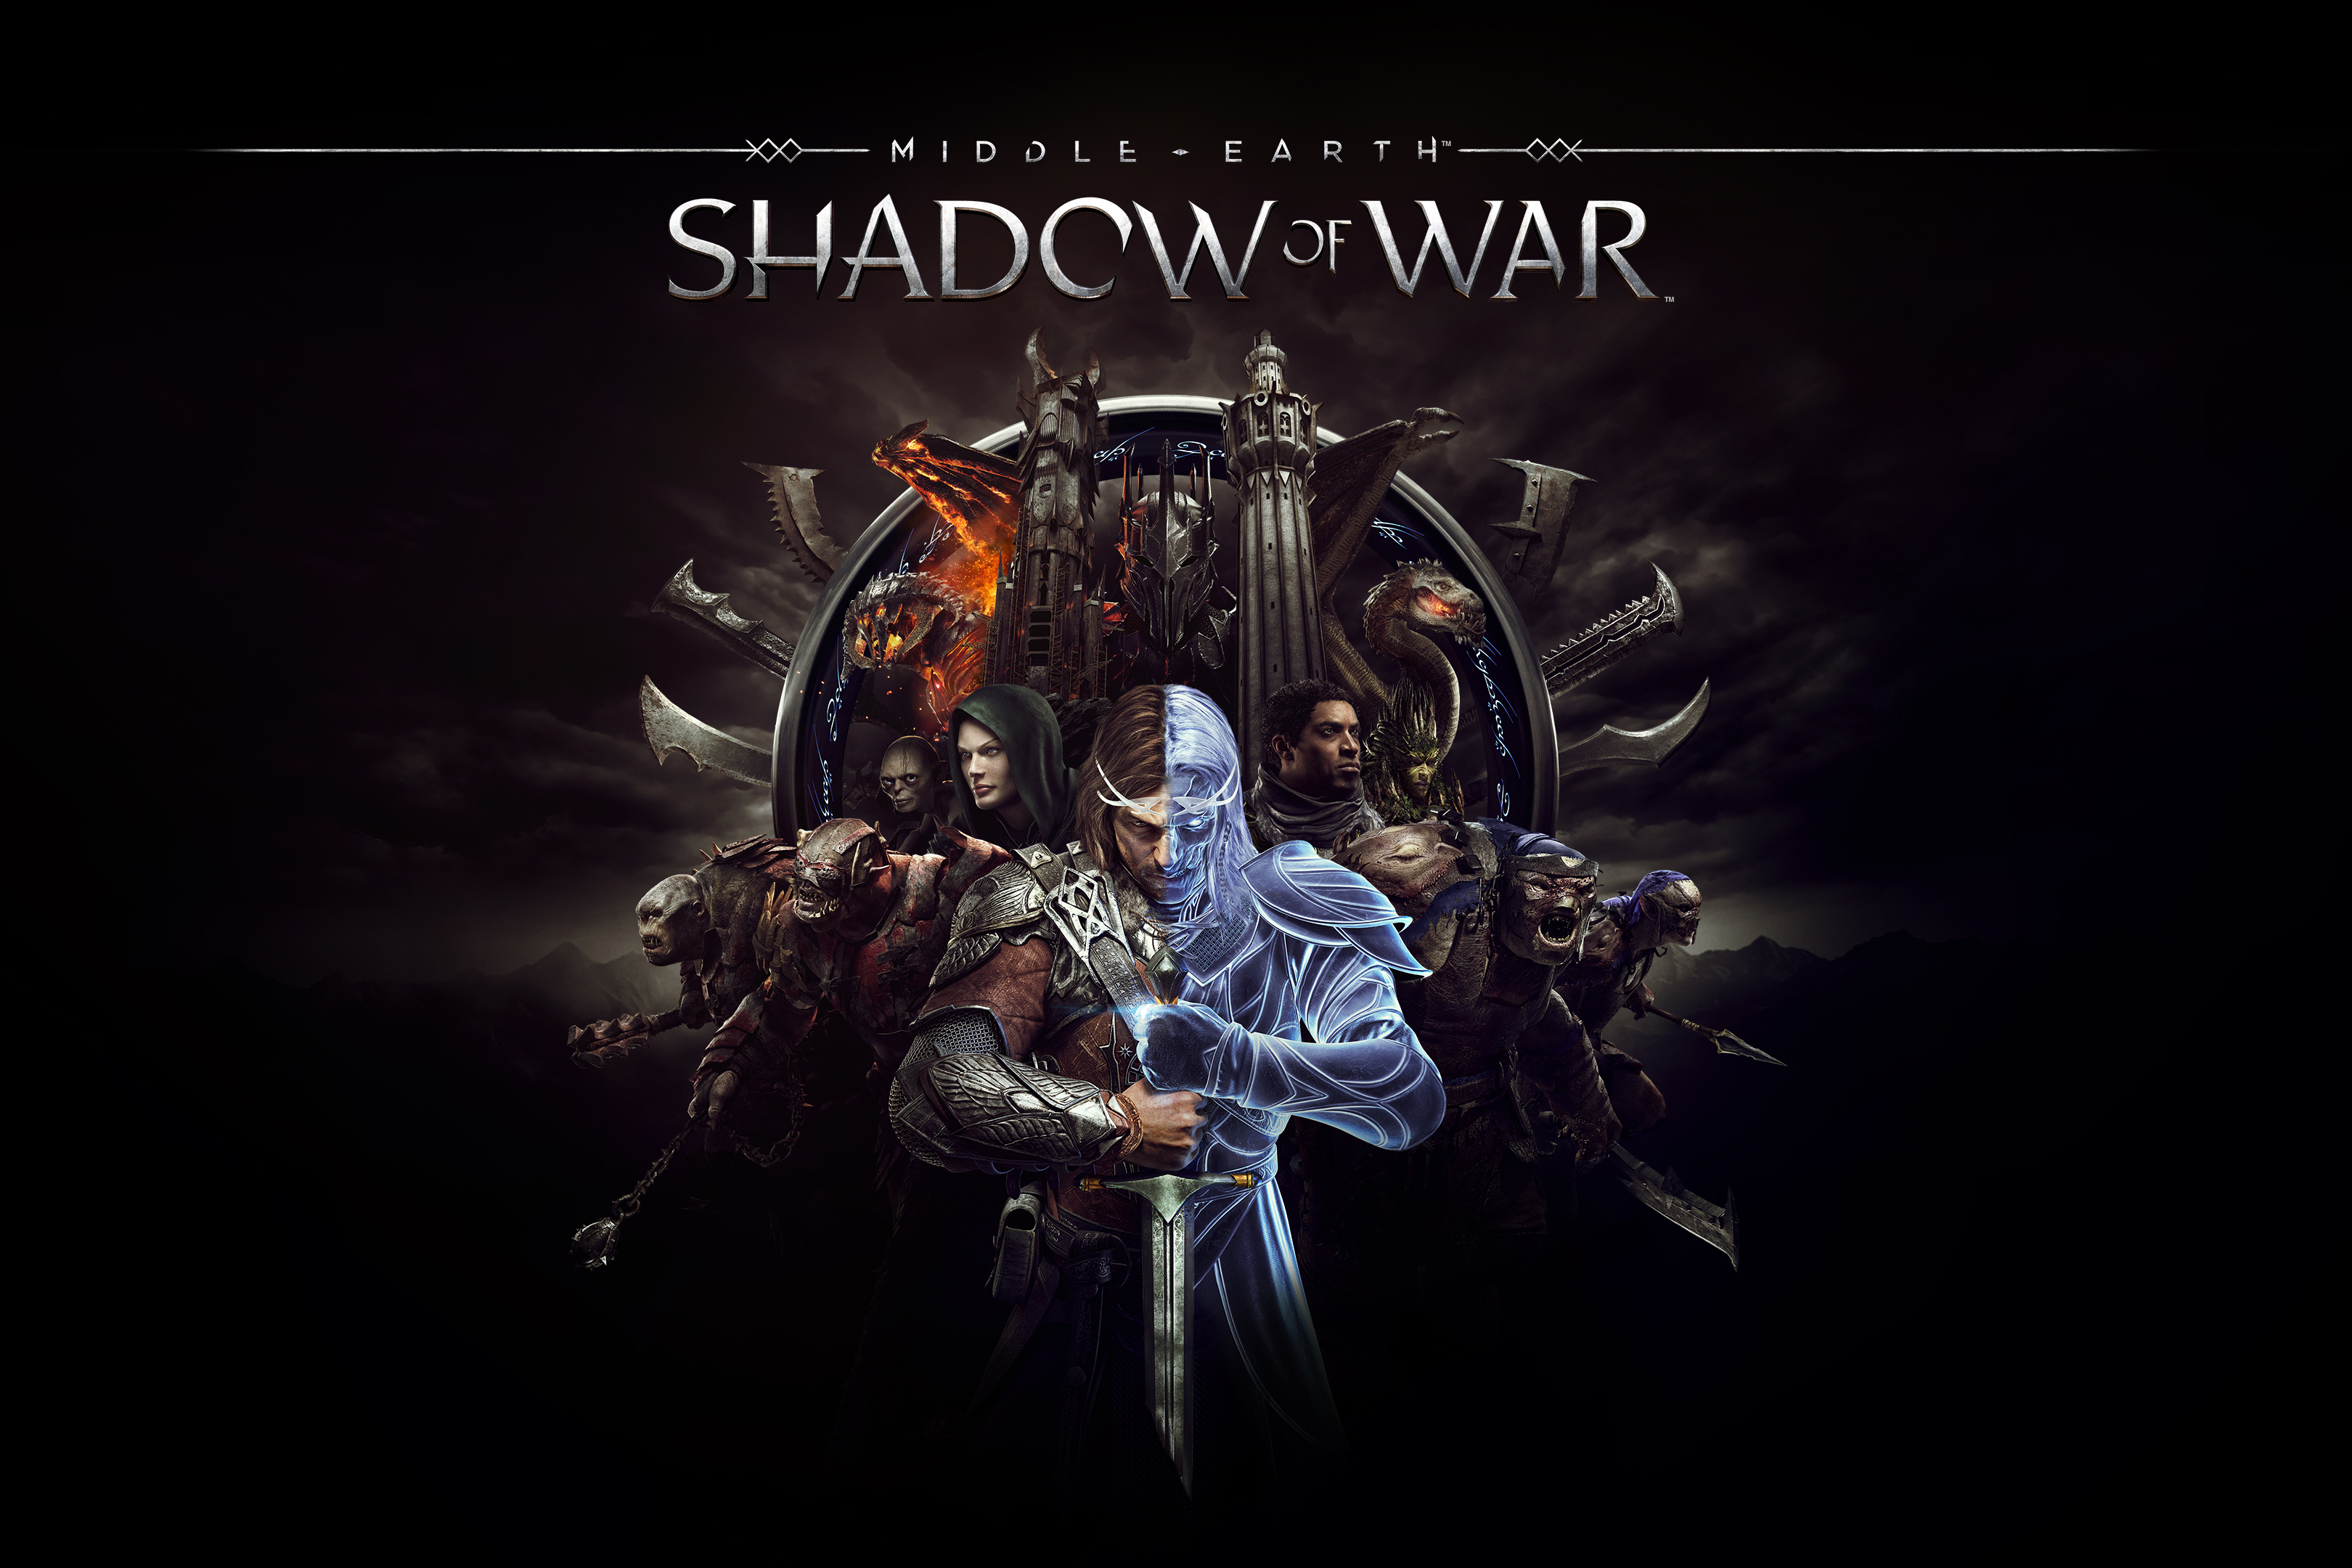 49 Middle earth Shadow of War HD Wallpapers